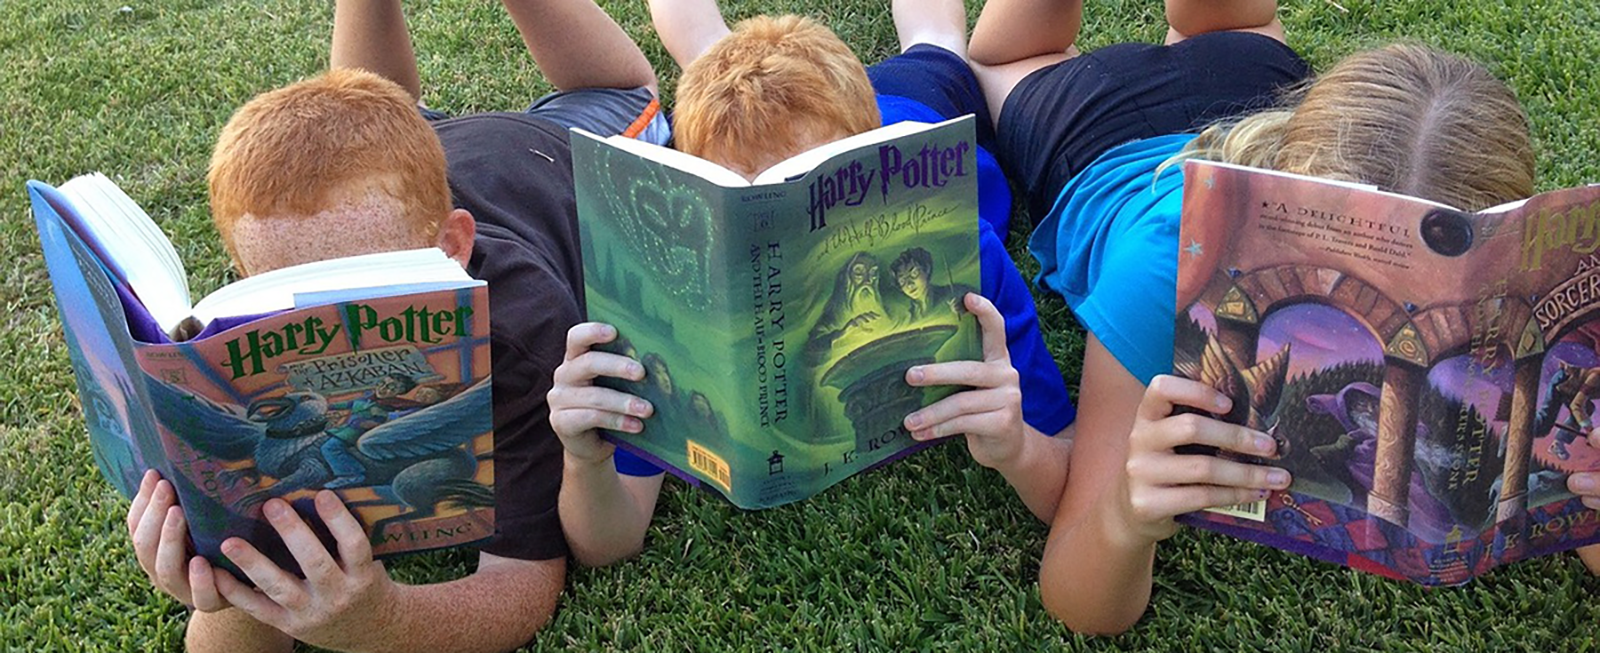 Three children reading Harry Potter books